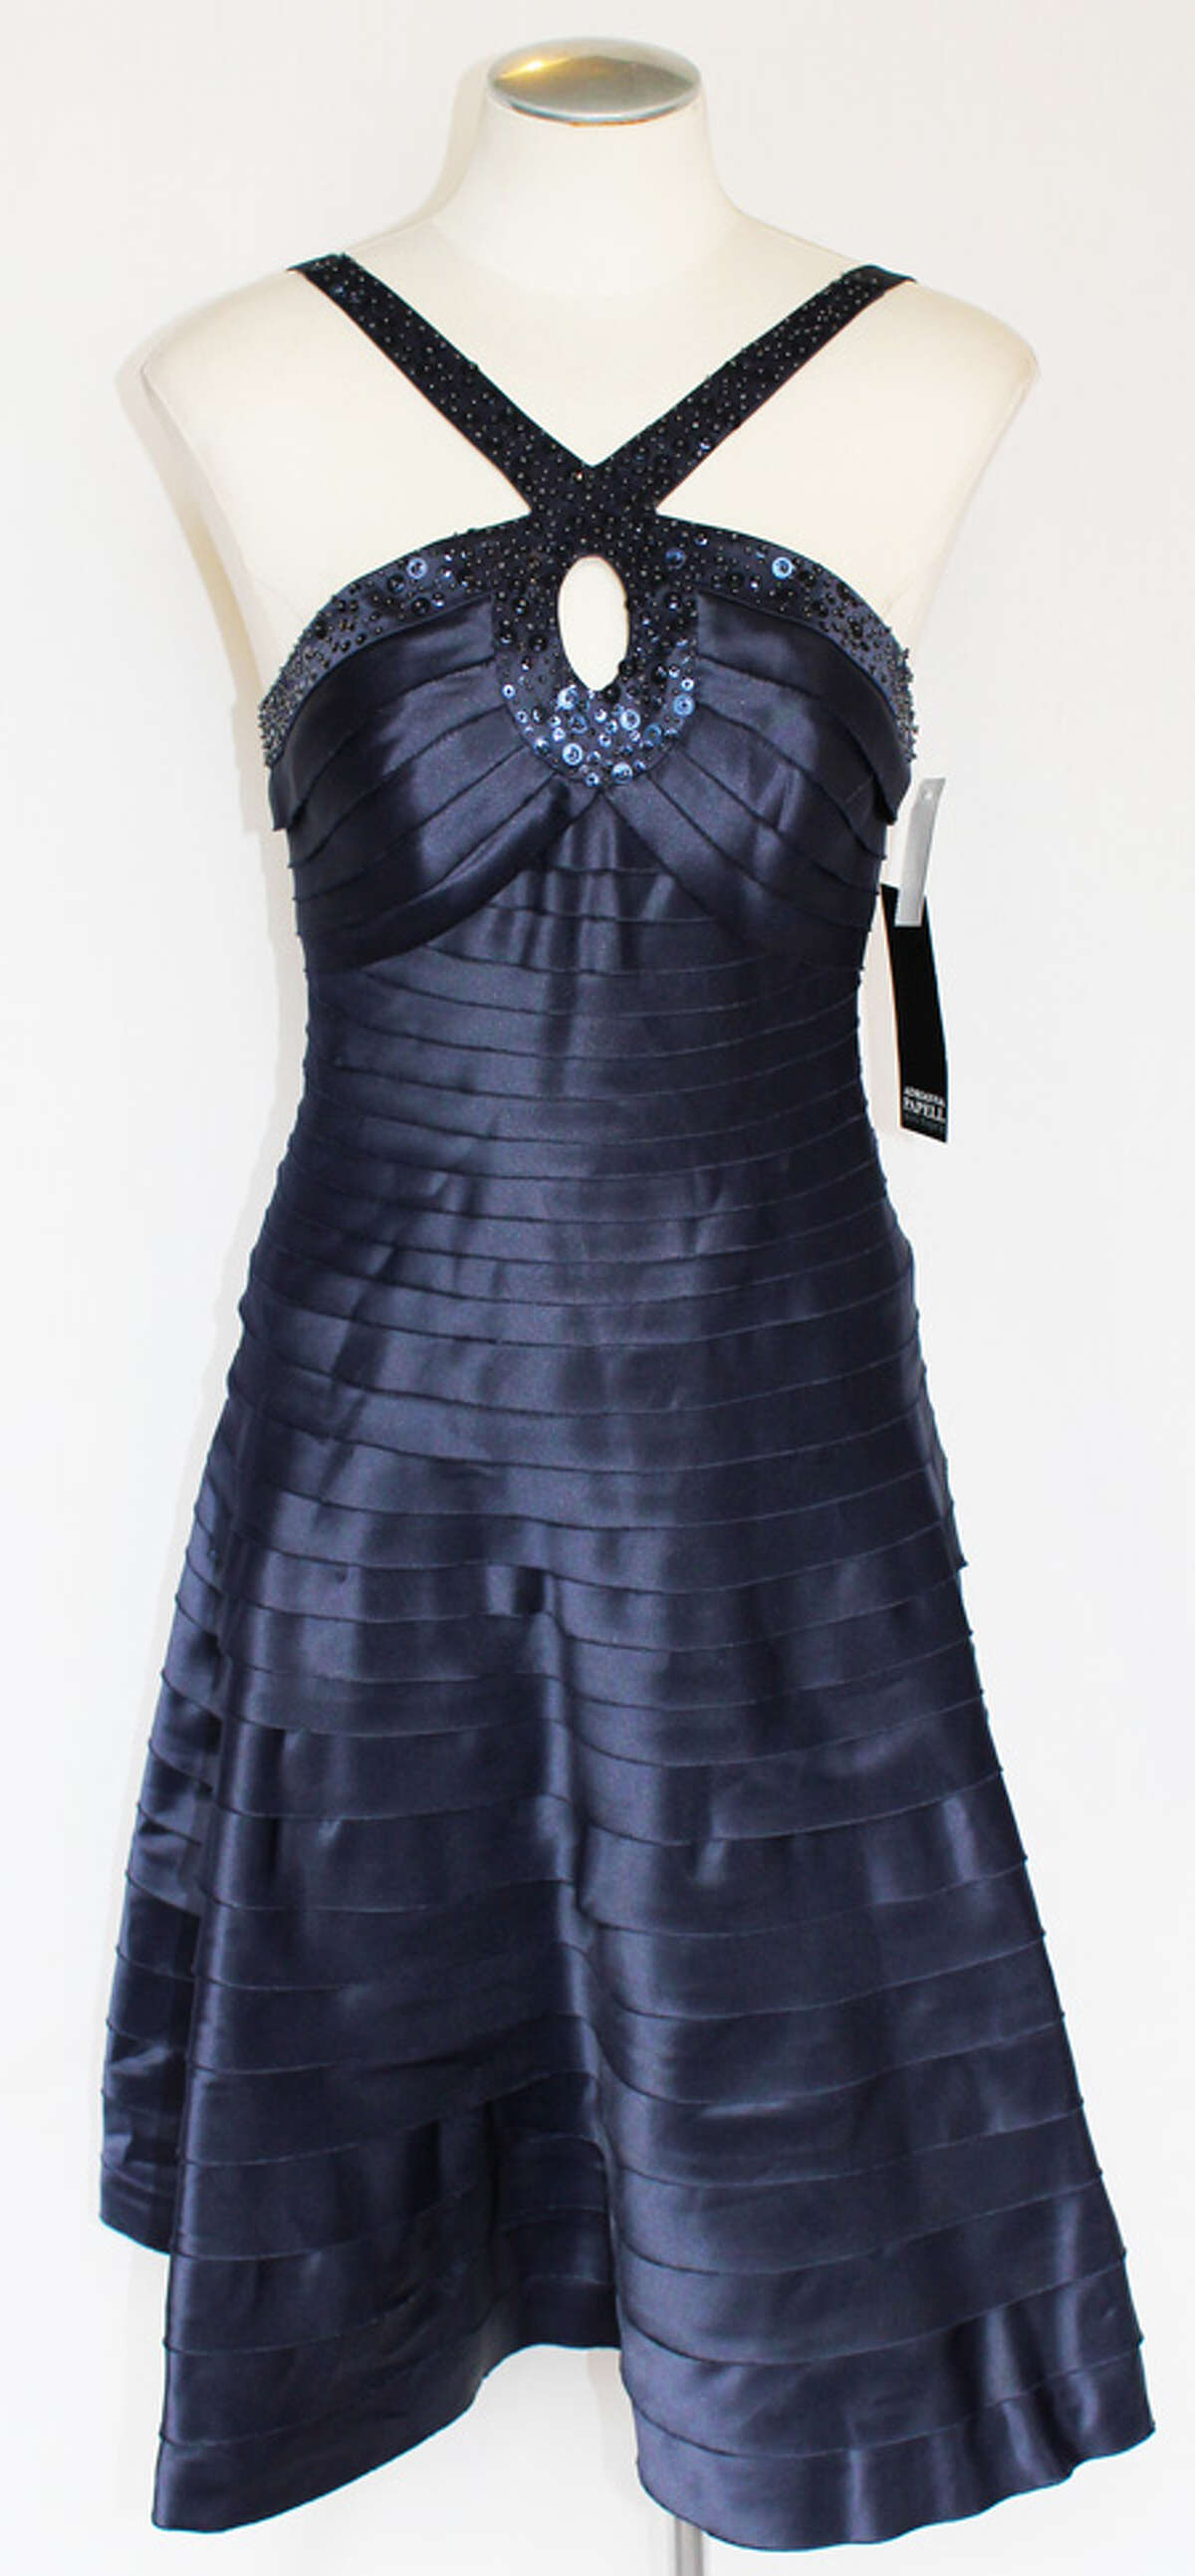 Adrianna Papell Boutique dress, NWT